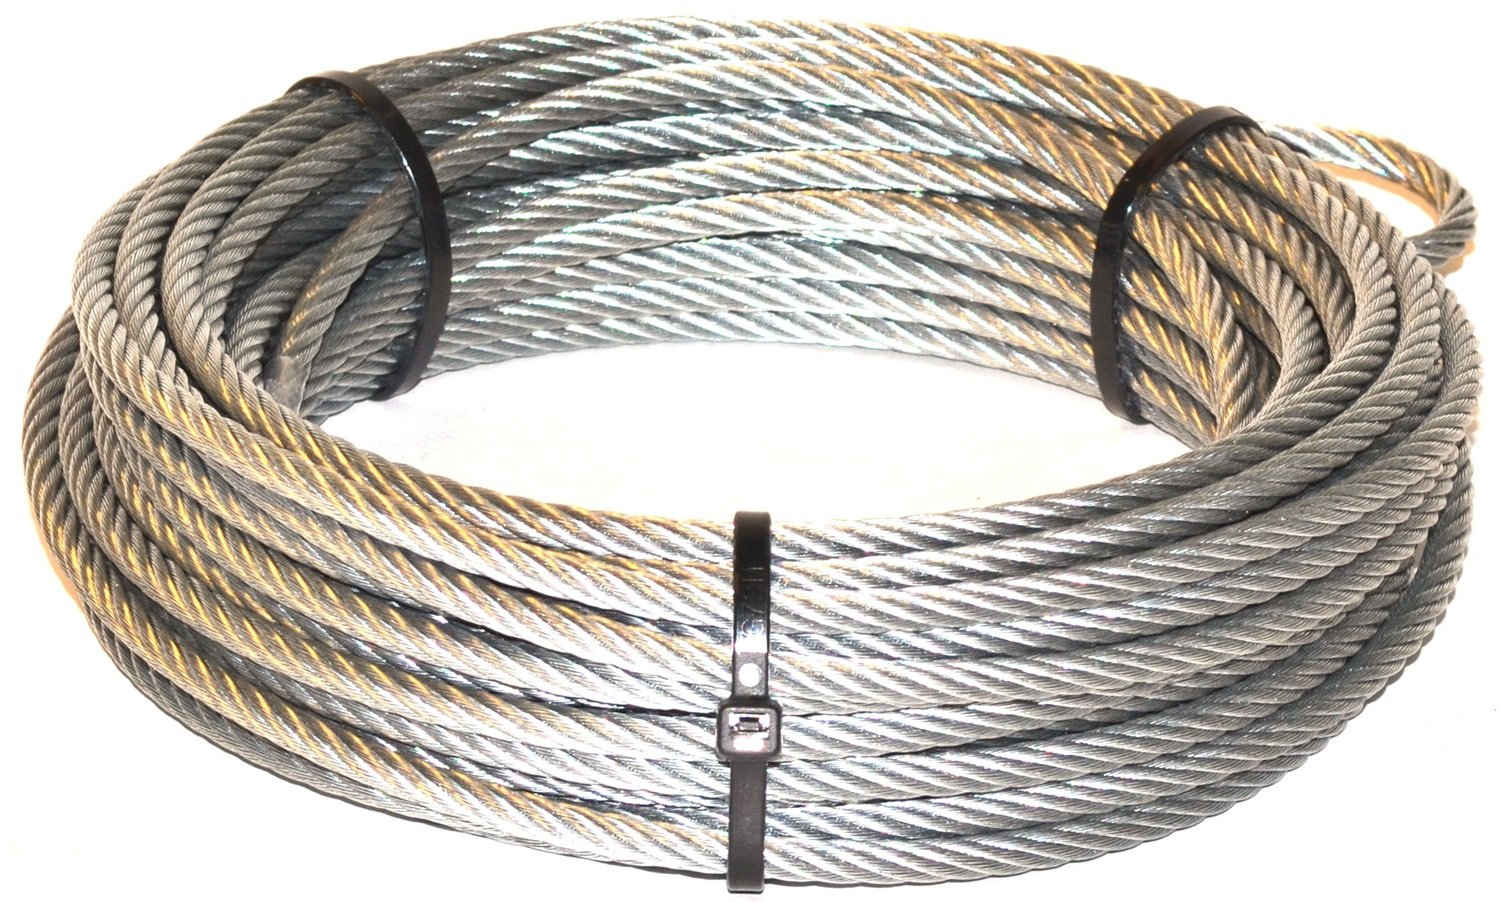 x 55 ft. WARN 68851 Winch Rope 7//32 in